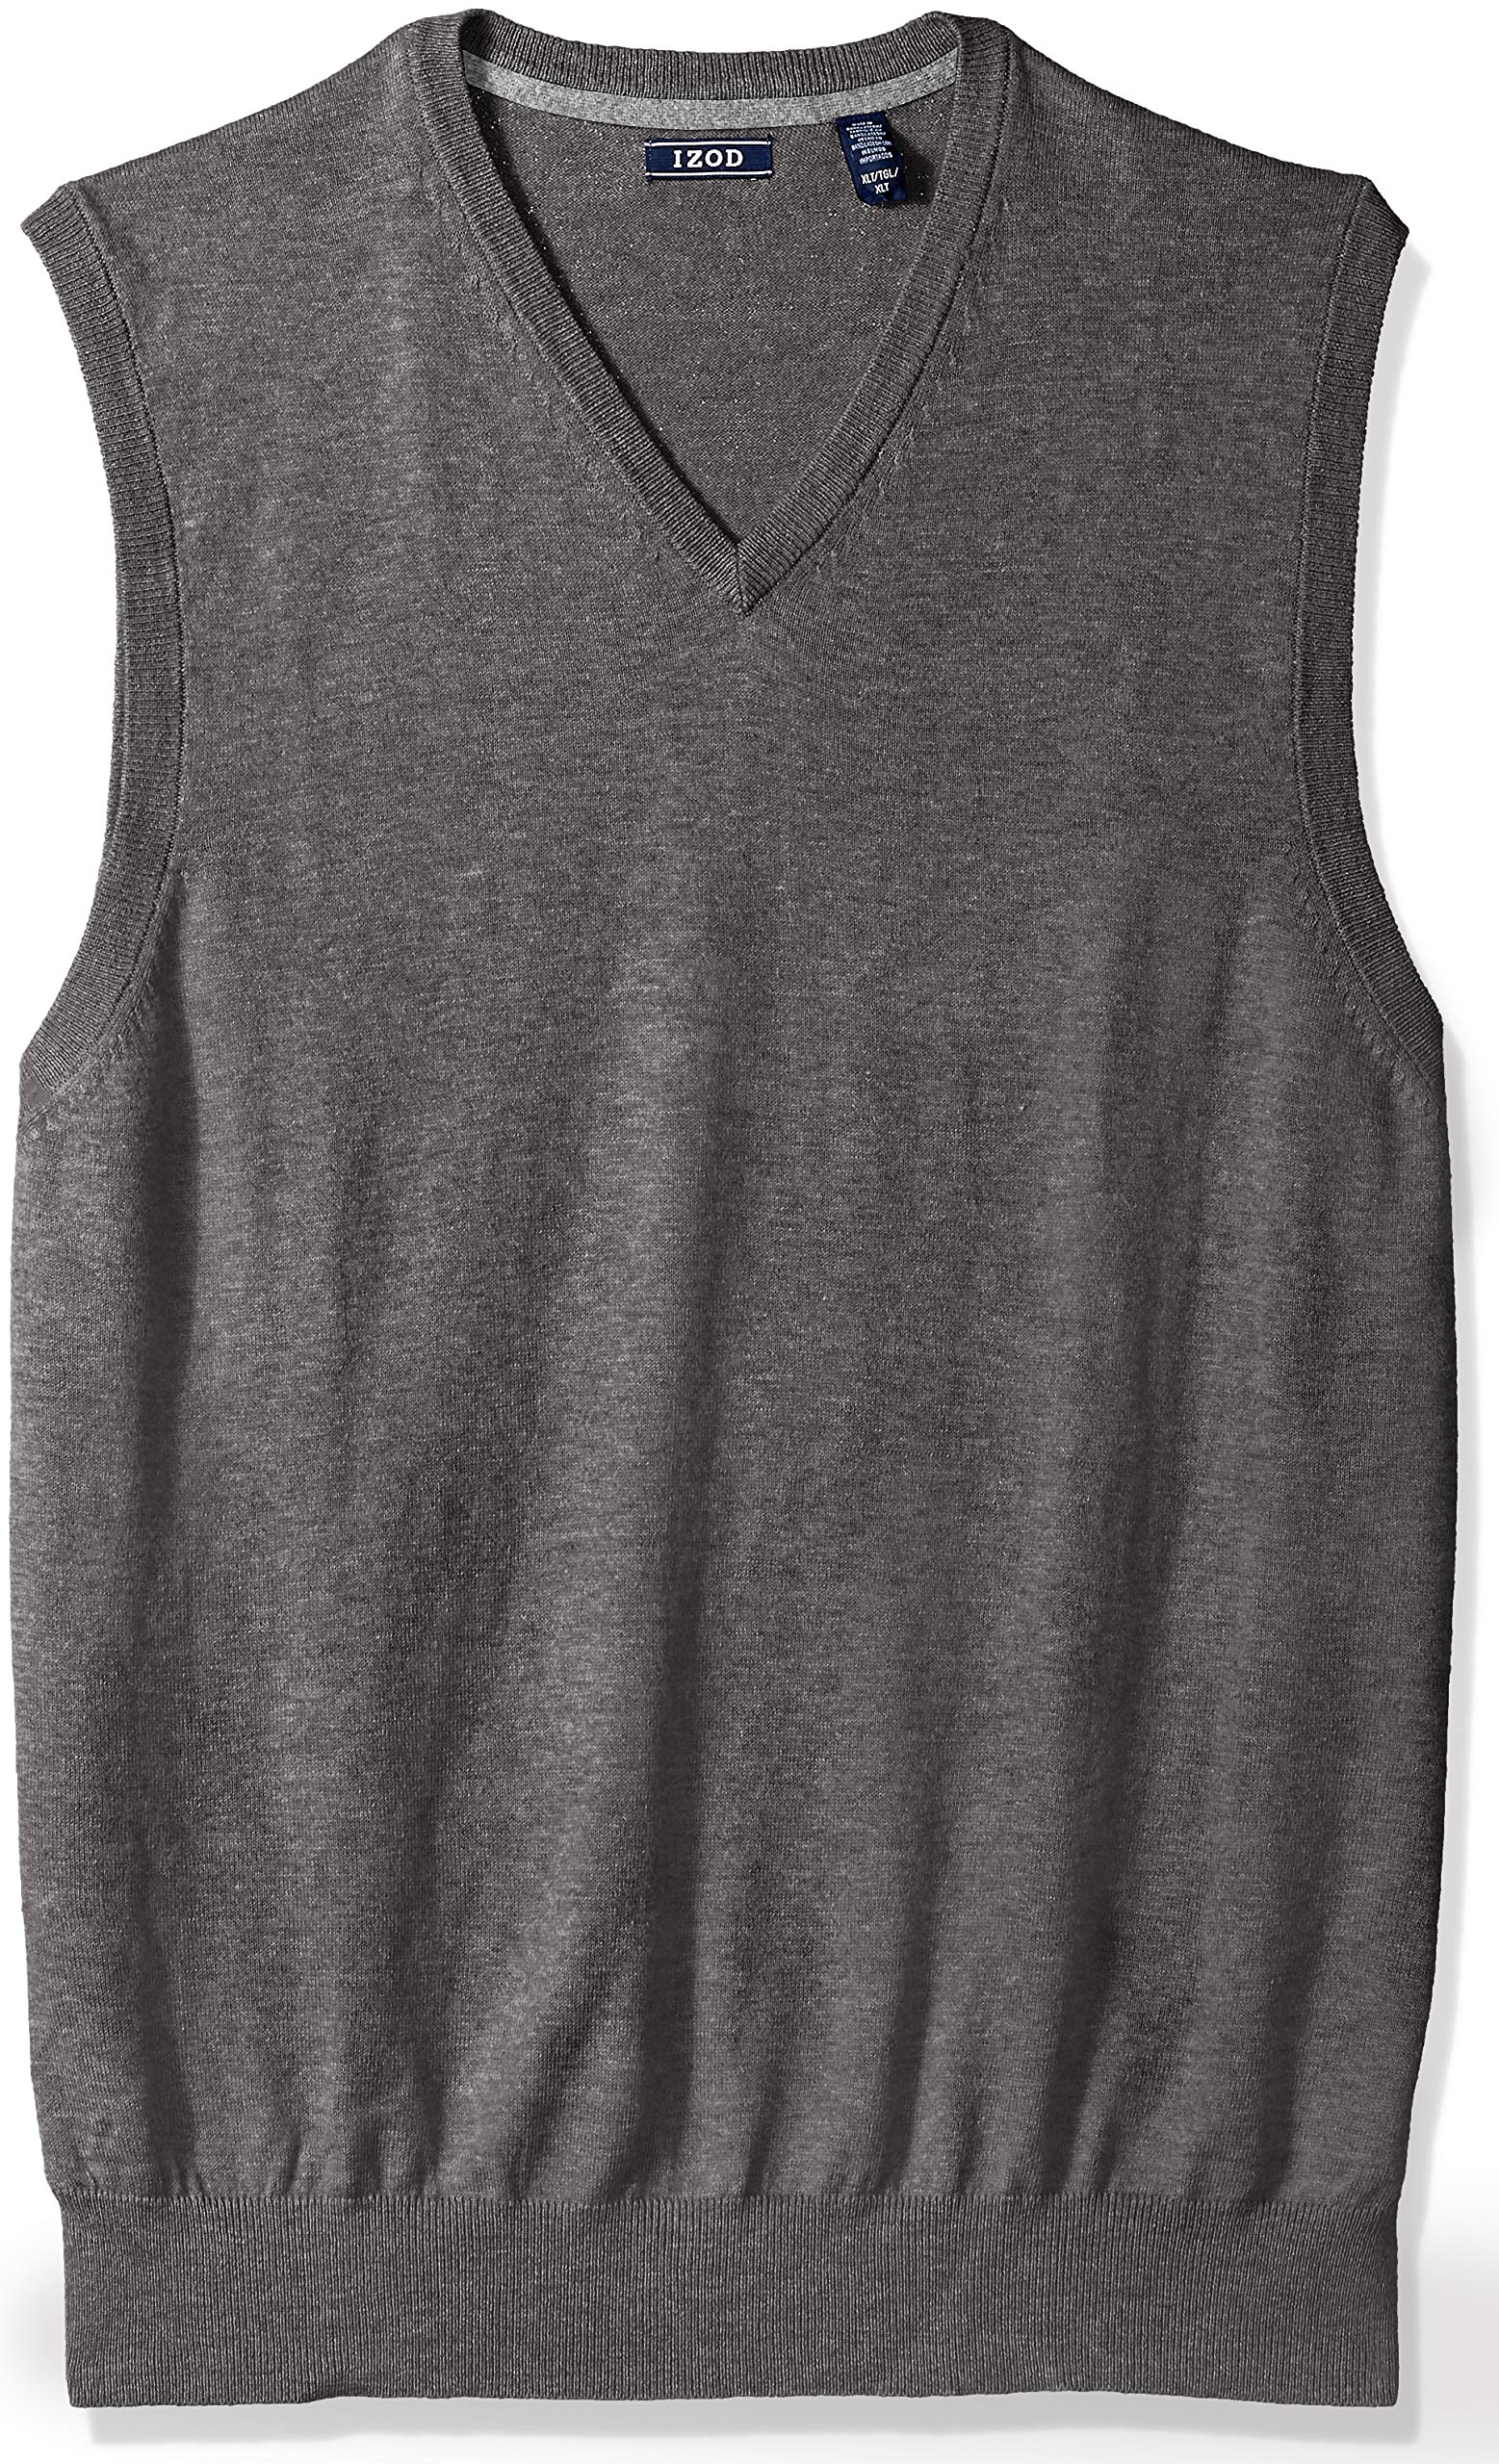 IZOD Men's Big and Tall Fine Gauge Solid Sweater Vest, New Carbon Heather, 4X-Large